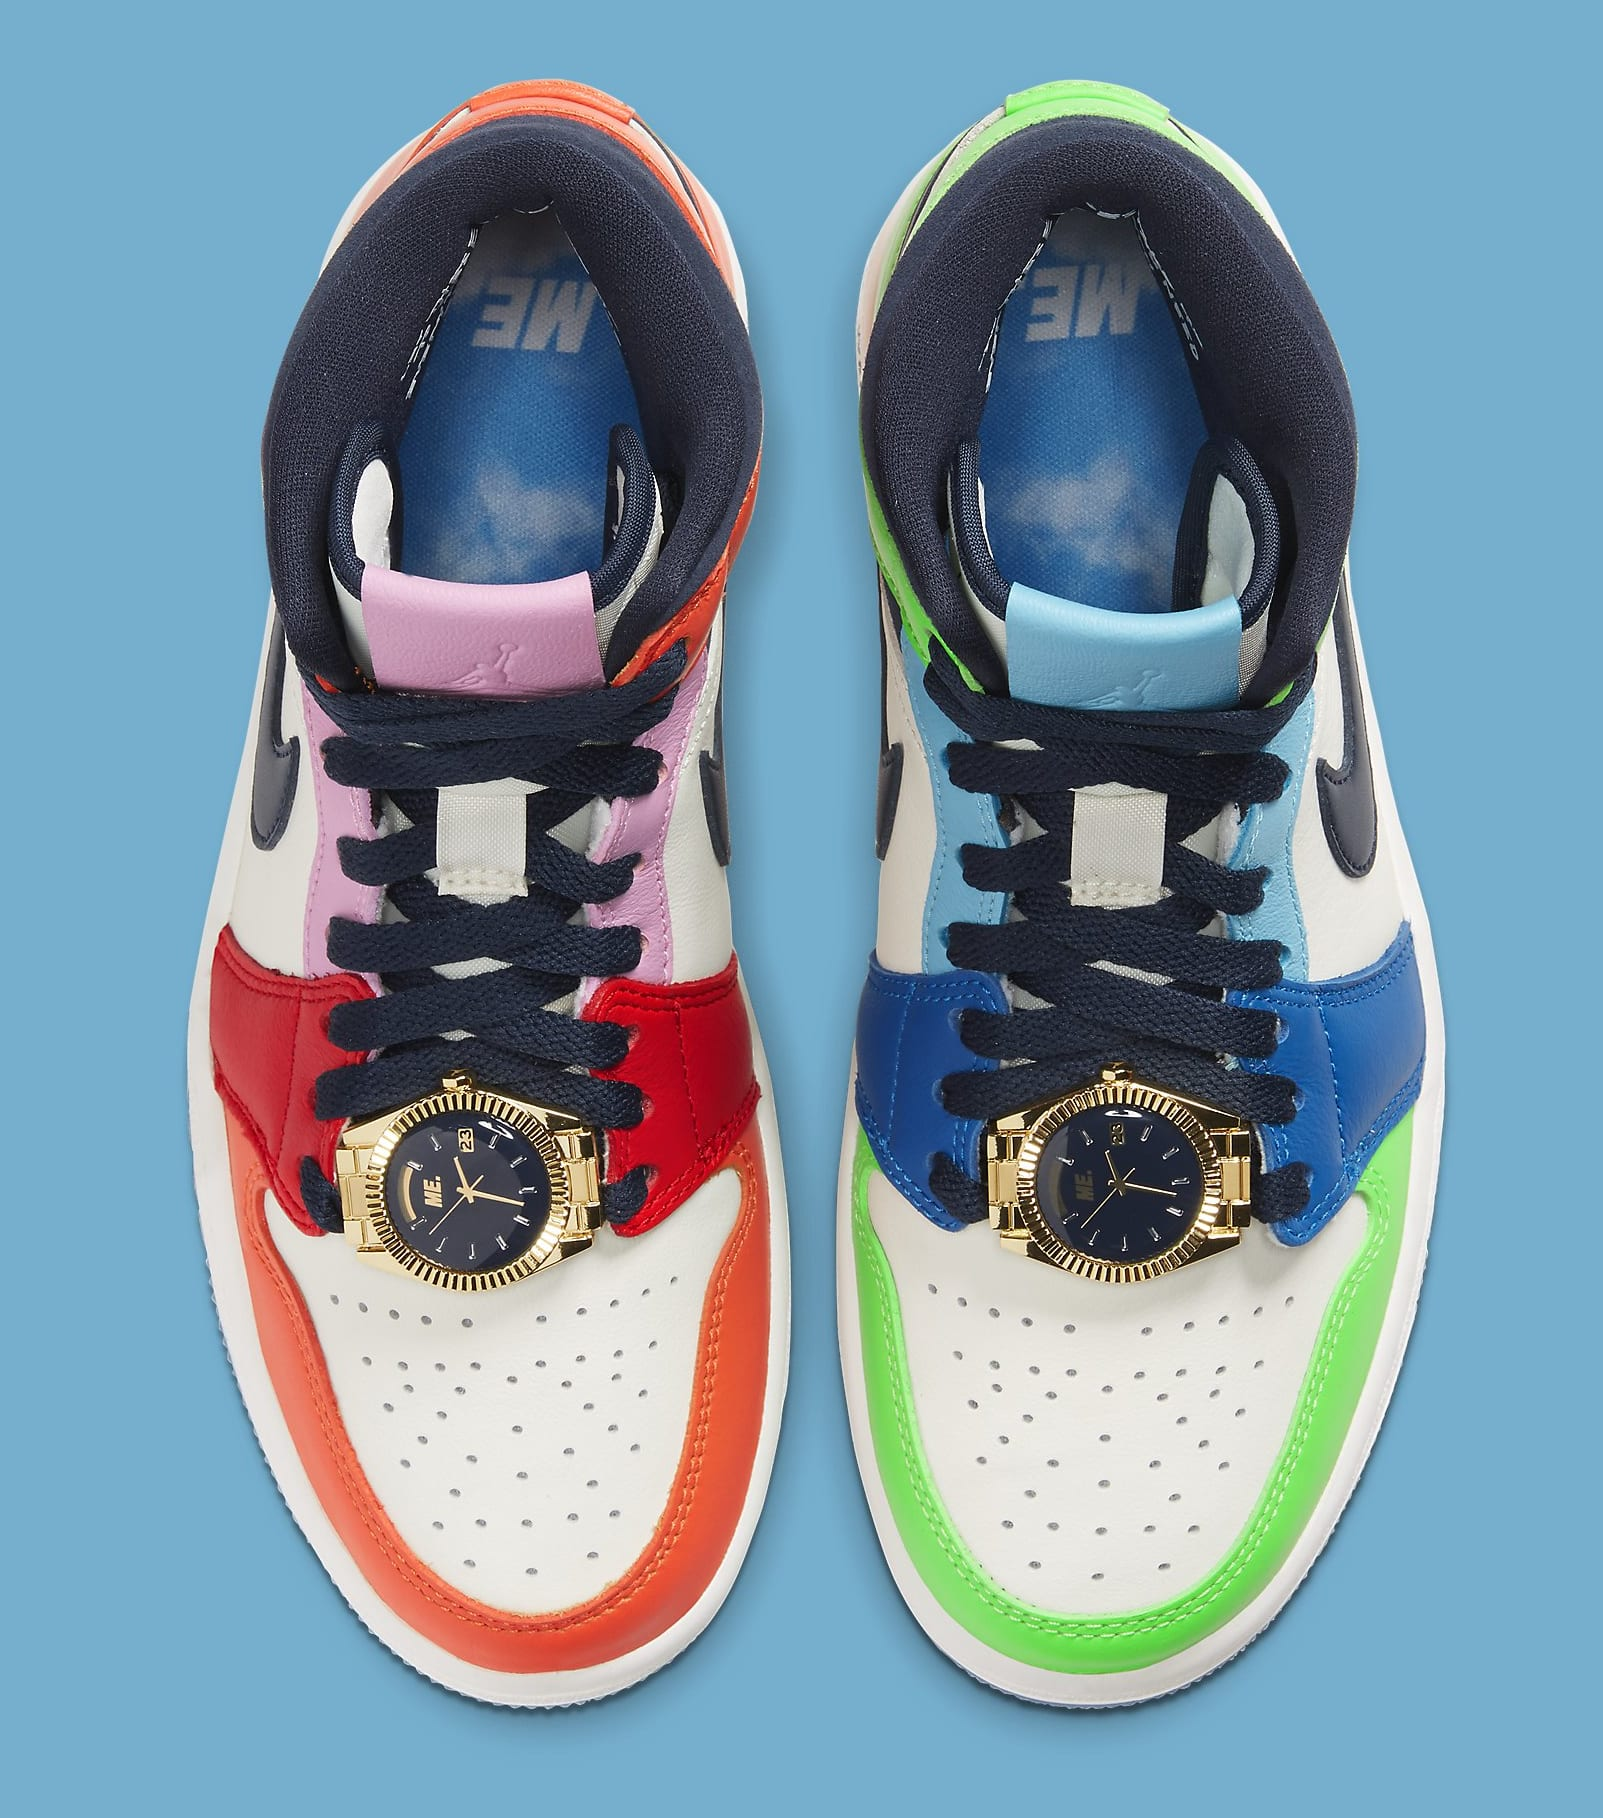 casual shoes later new lifestyle Melody Ehsani x Air Jordan 1 Mid SE Release Date | Sole ...